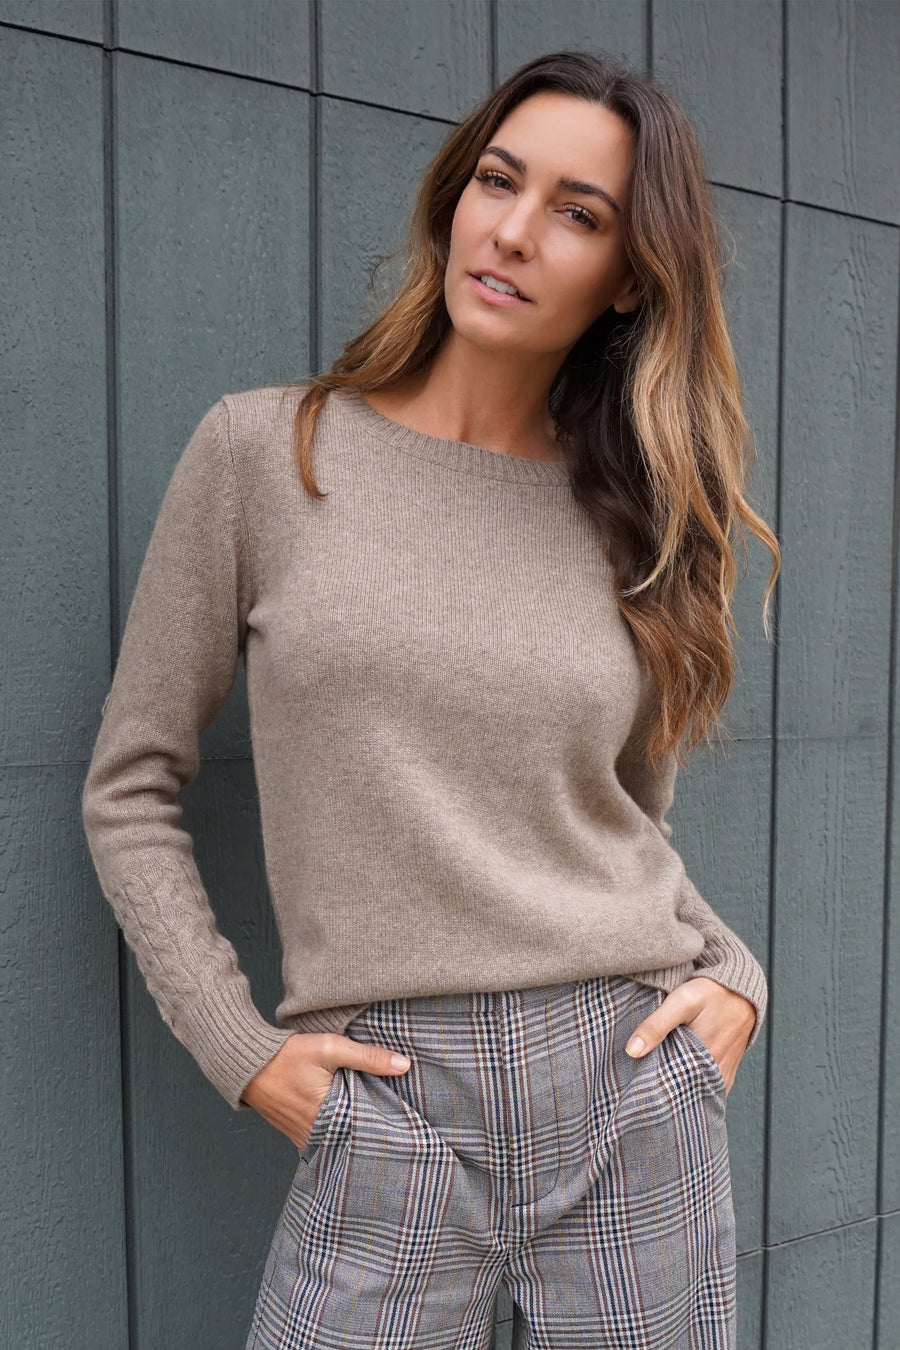 pine cashmere women's high quality 100% pure organic cashmere crewneck sweater kayden in brown